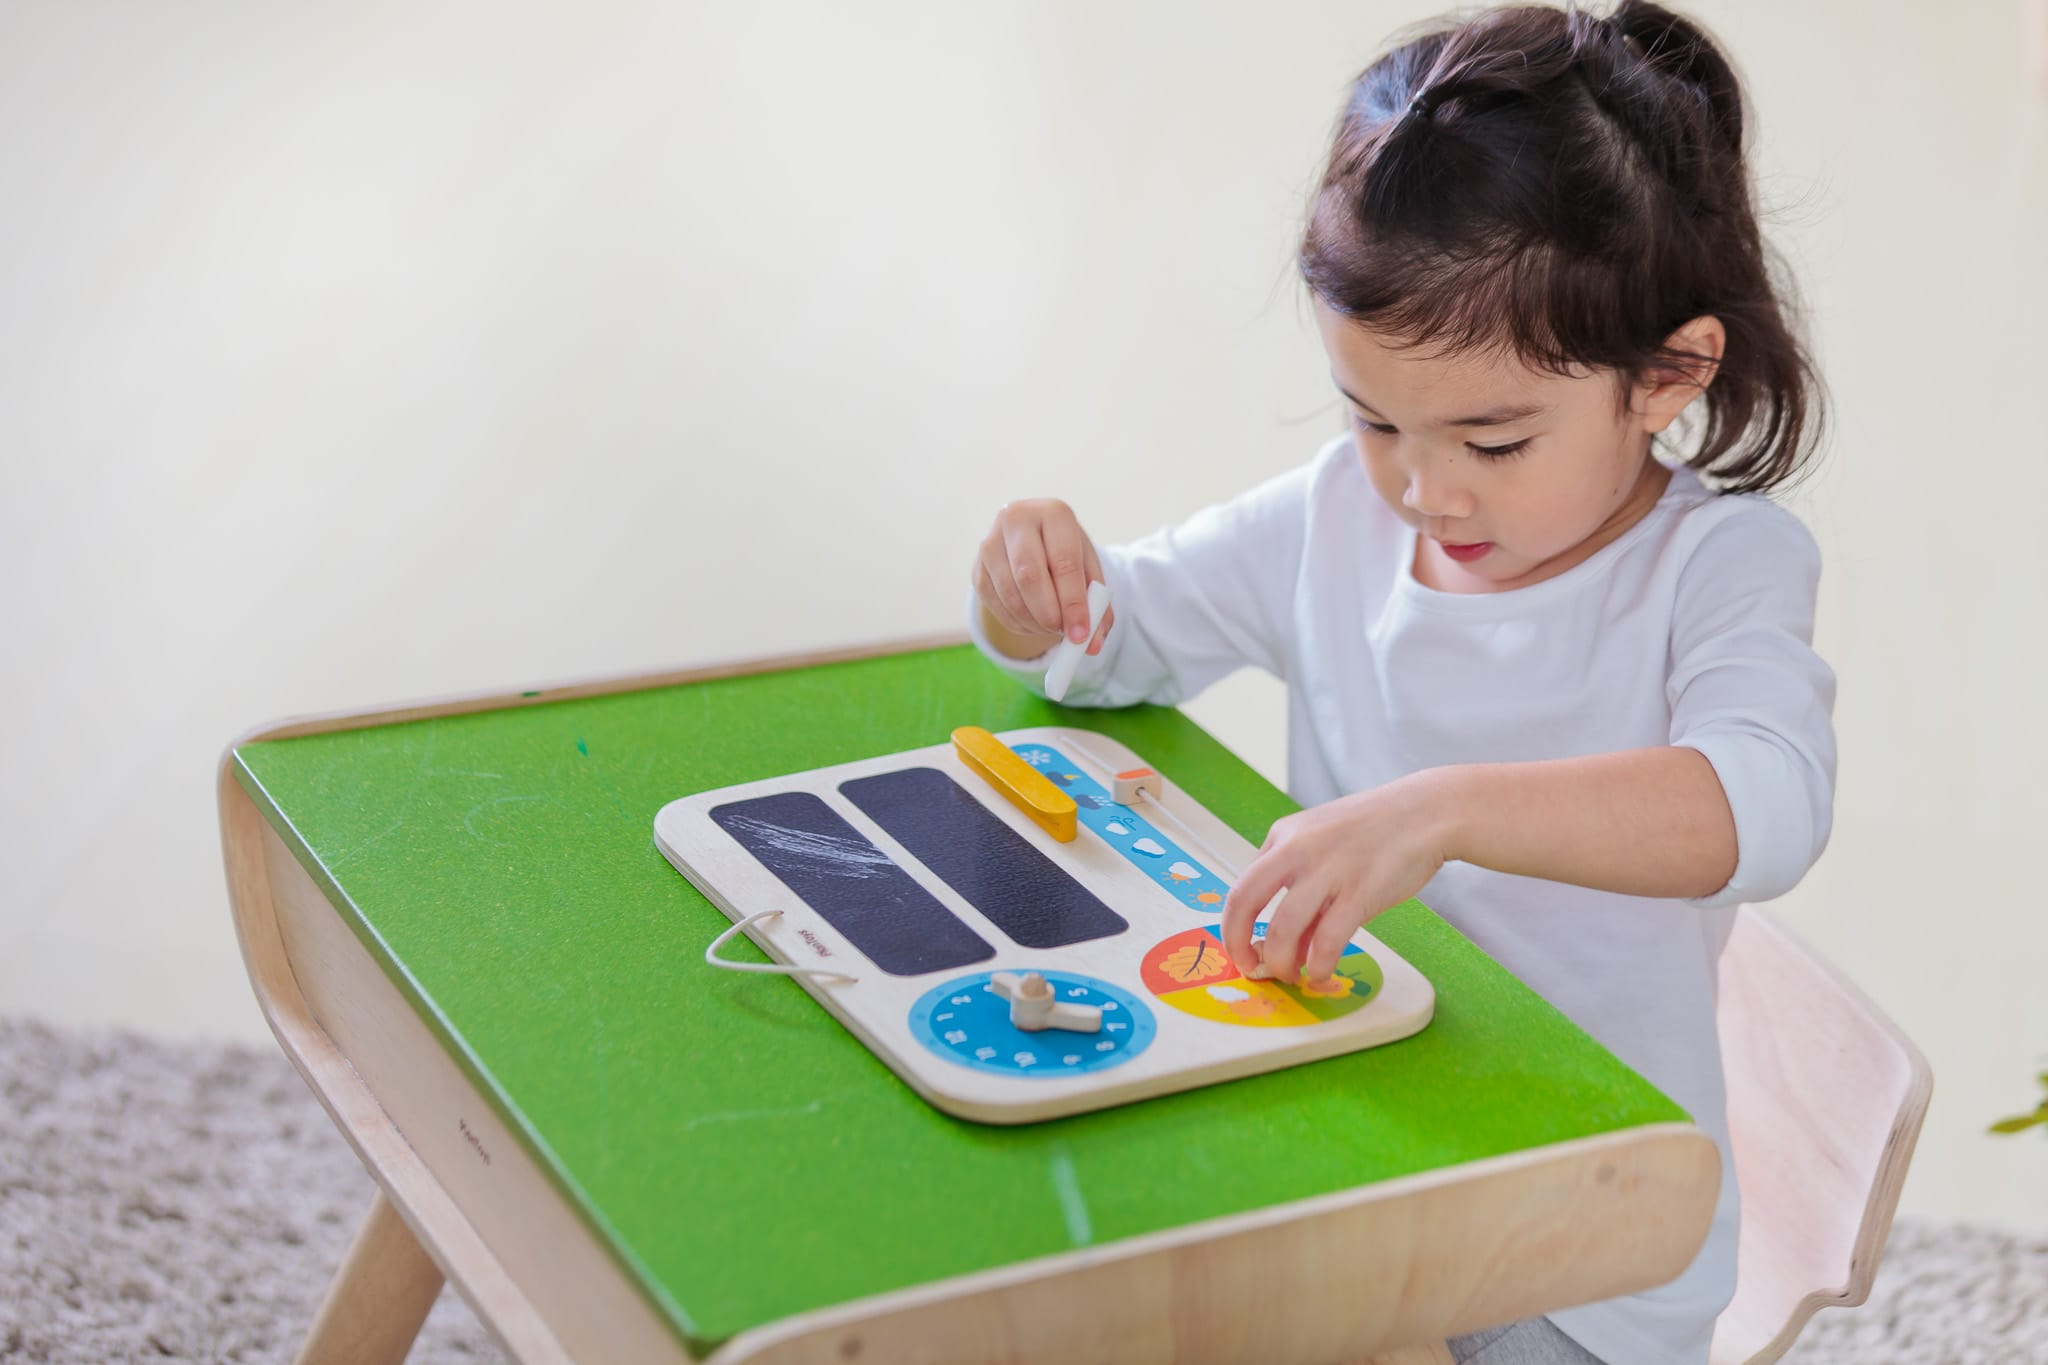 5359_PlanToys_MY_FIRST_CALENDAR_Learning_and_Education_Mathematical_Language_and_Communications_Explore_Fine_Motor_3yrs_Wooden_toys_Education_toys_Safety_Toys_Non-toxic_4.jpg